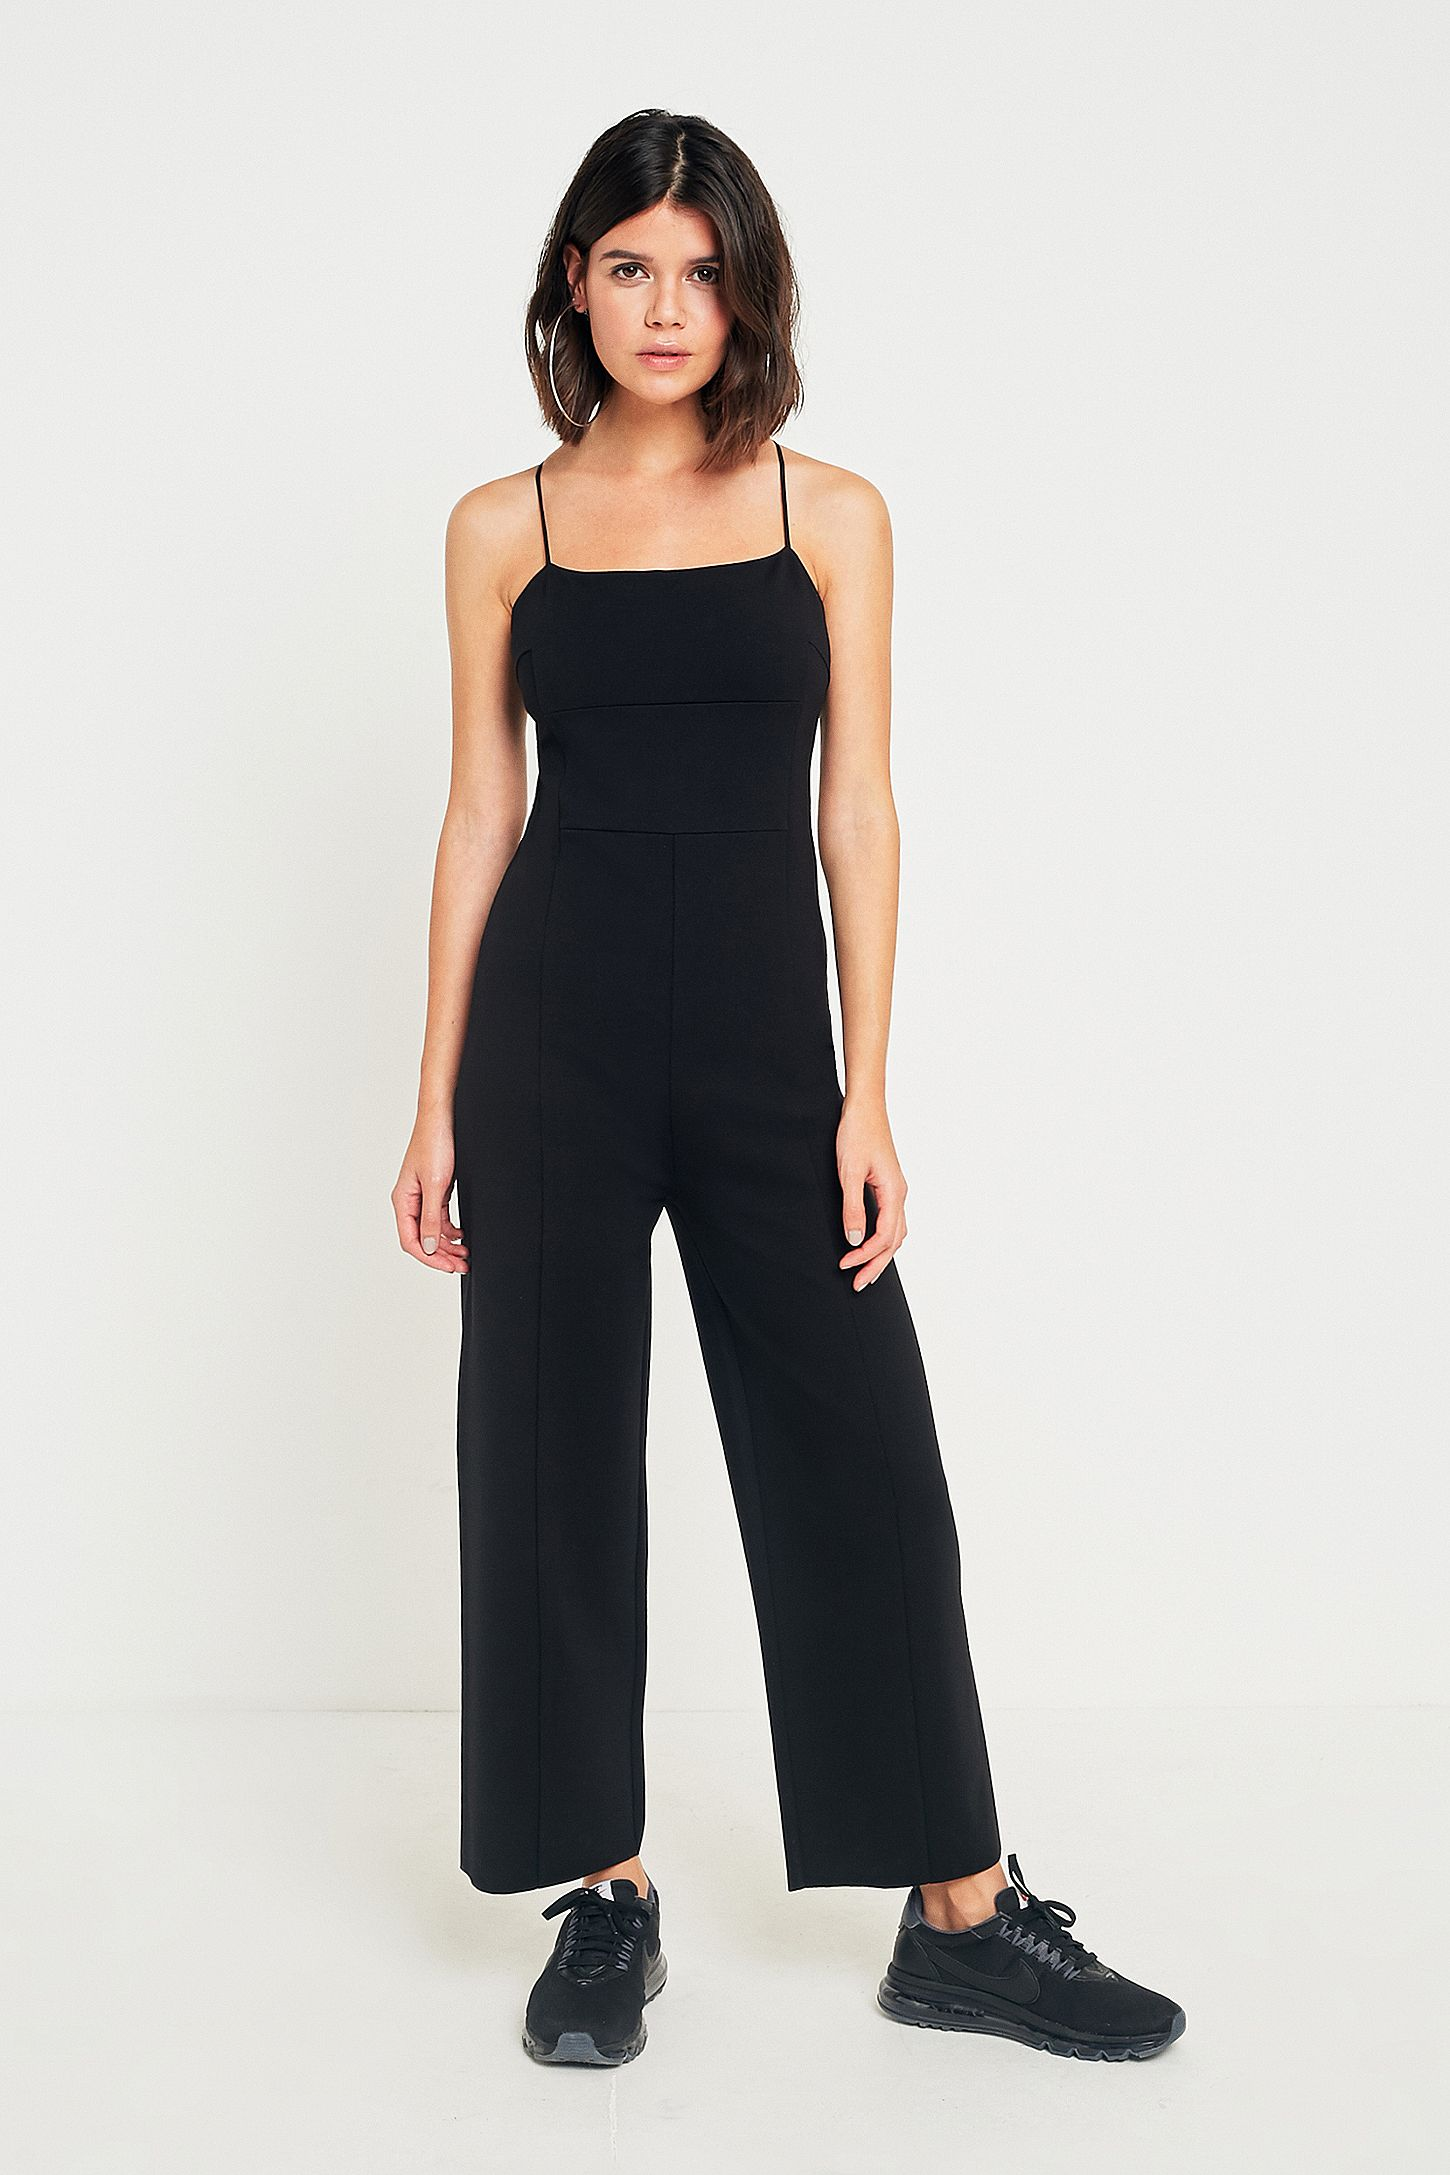 01070d33256 Pins   Needles Audrey Square Neck Jumpsuit. Click on image to zoom. Hover  to zoom. Double Tap to Zoom